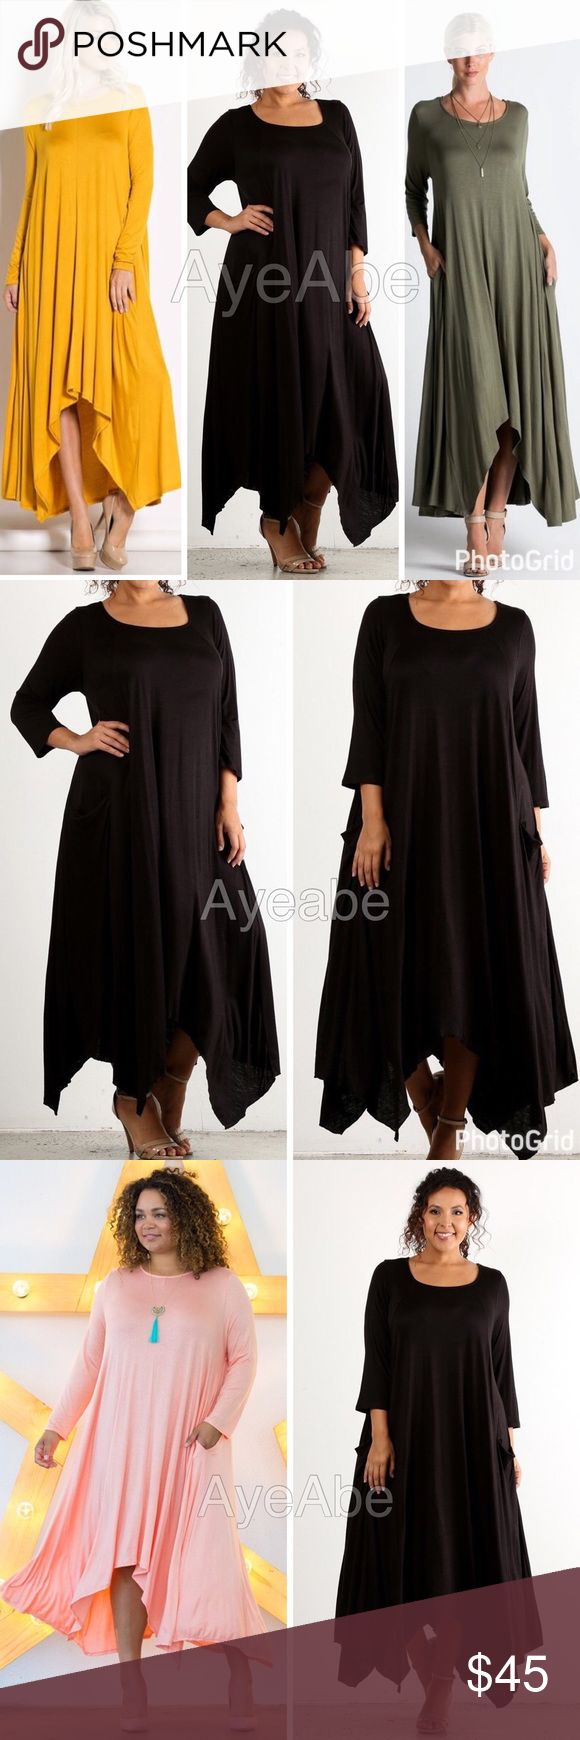 Plus size long sleeves asymmetrical hem maxi dress New plus size  Hi Low hem, asymmetrical hem Long Sleeve  Oversized Flowy Maxi with pockets SUPER sexy Long sleeve hi low maxi dress,side Pockets, Oversized, loose fit Super Comfy, soft knit jersey material lightweight fabric. Dresses Maxi